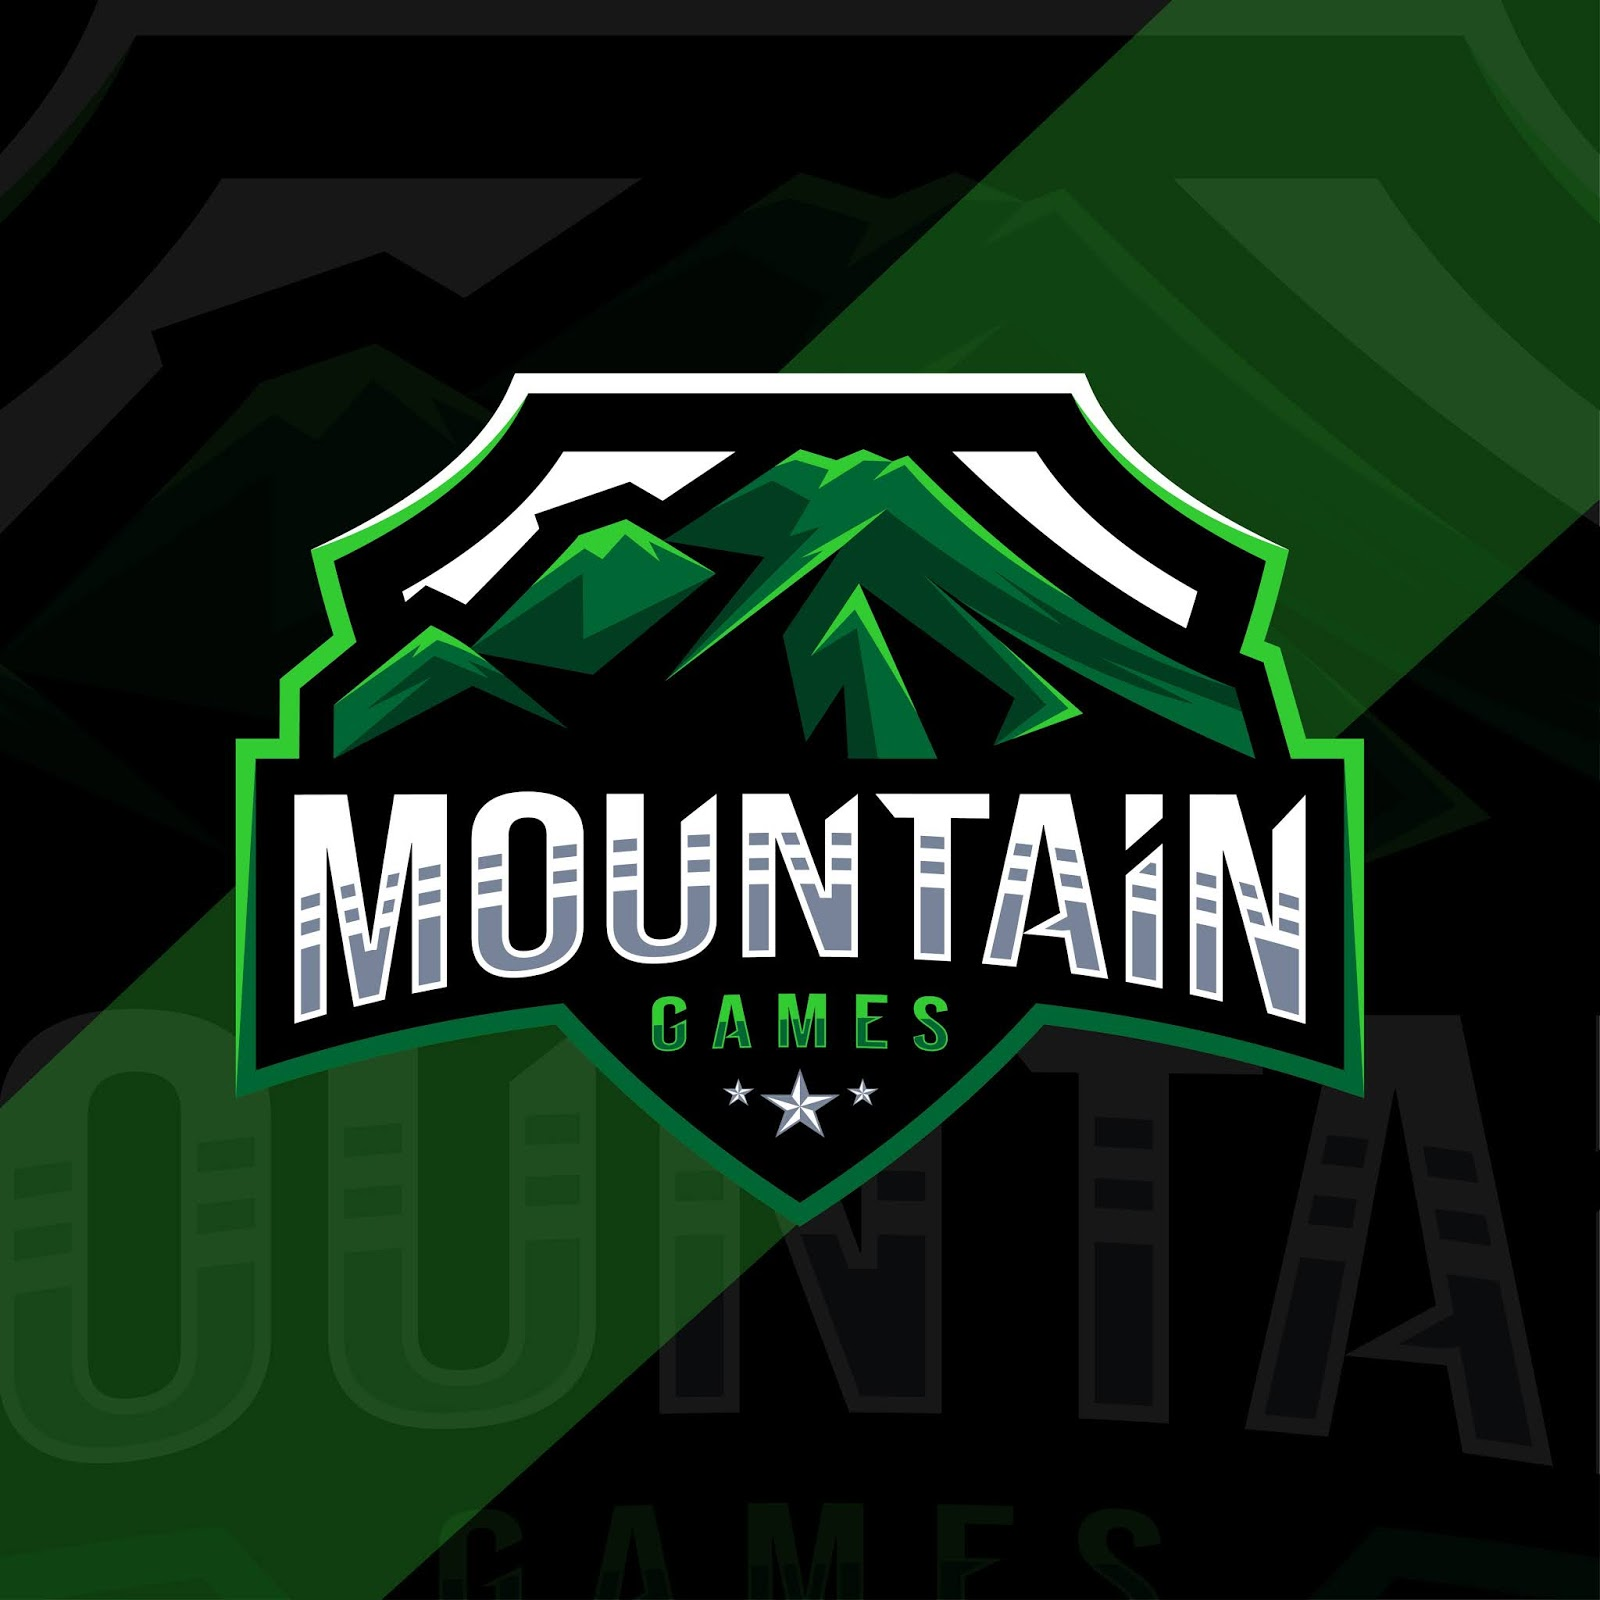 Mountain Games Mascot Logo Sport Design Free Download Vector CDR, AI, EPS and PNG Formats